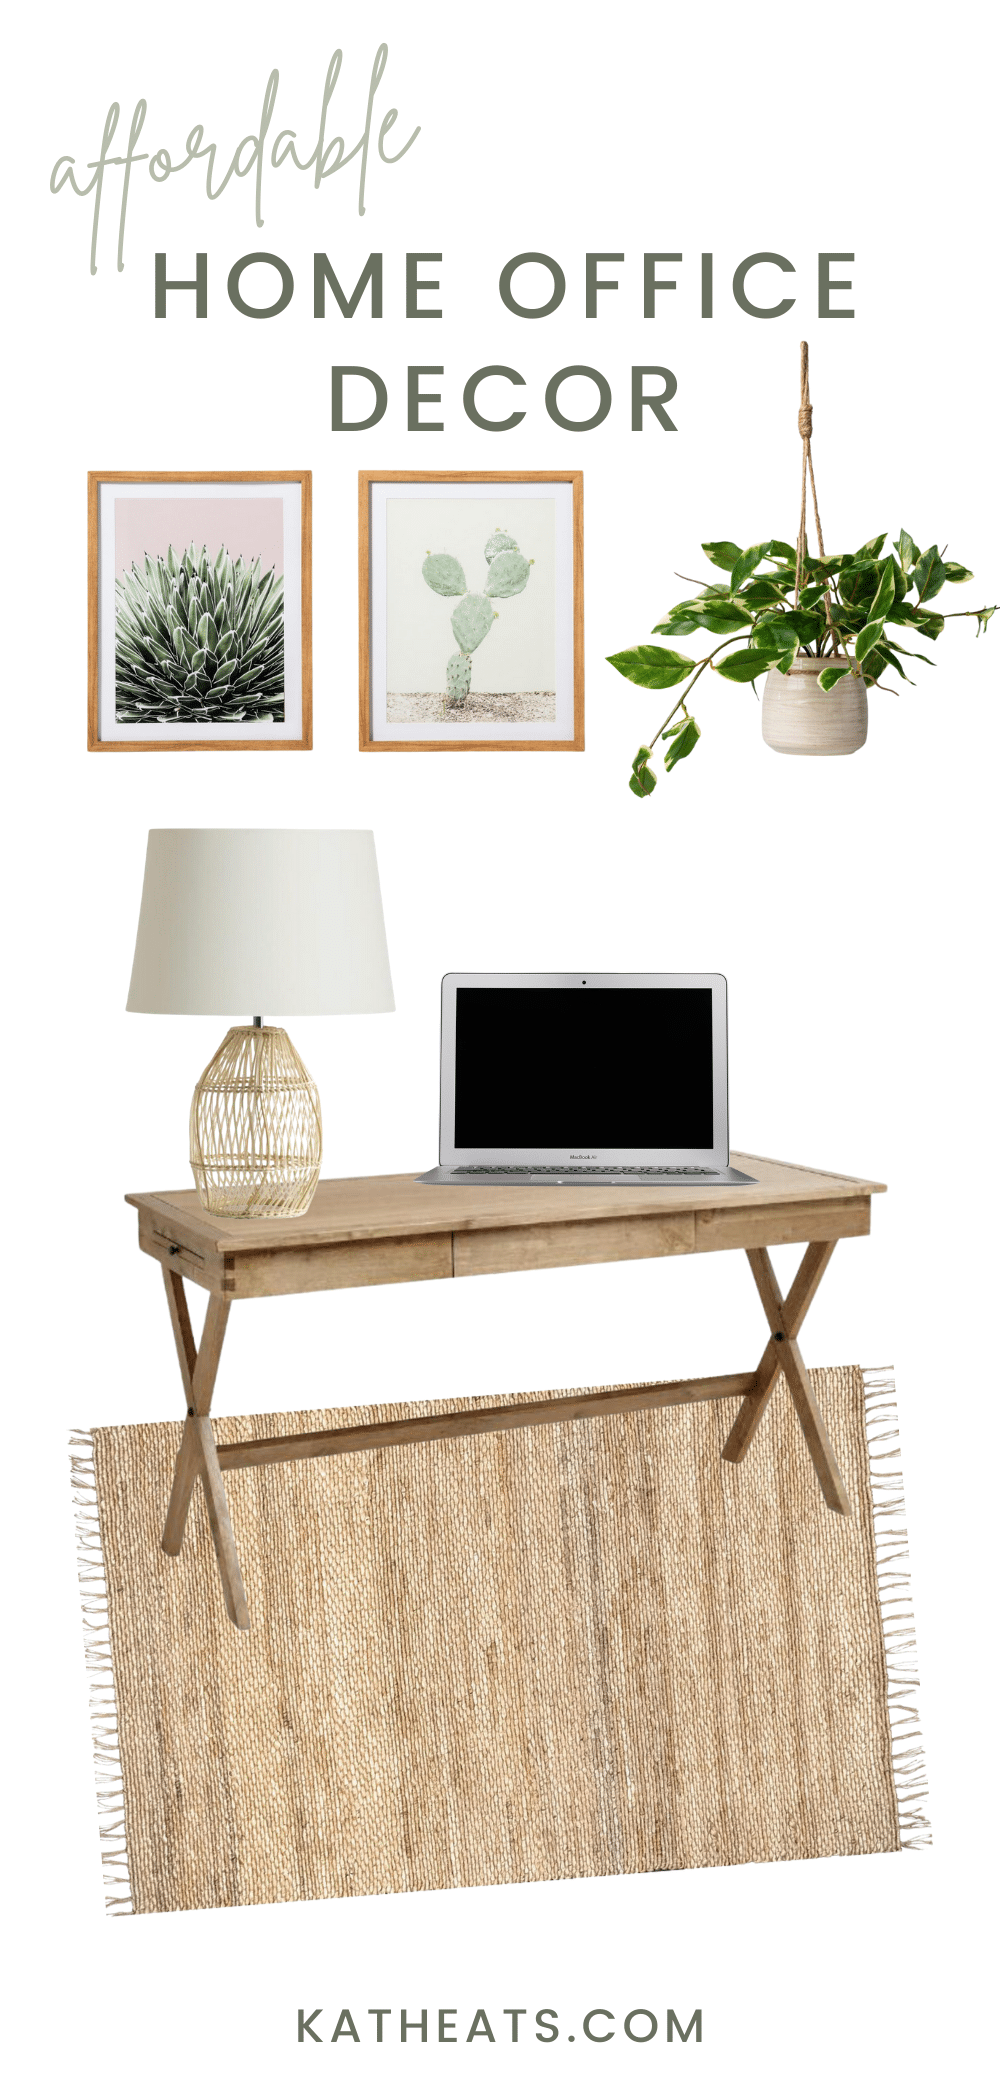 affordable home office decor - natural look